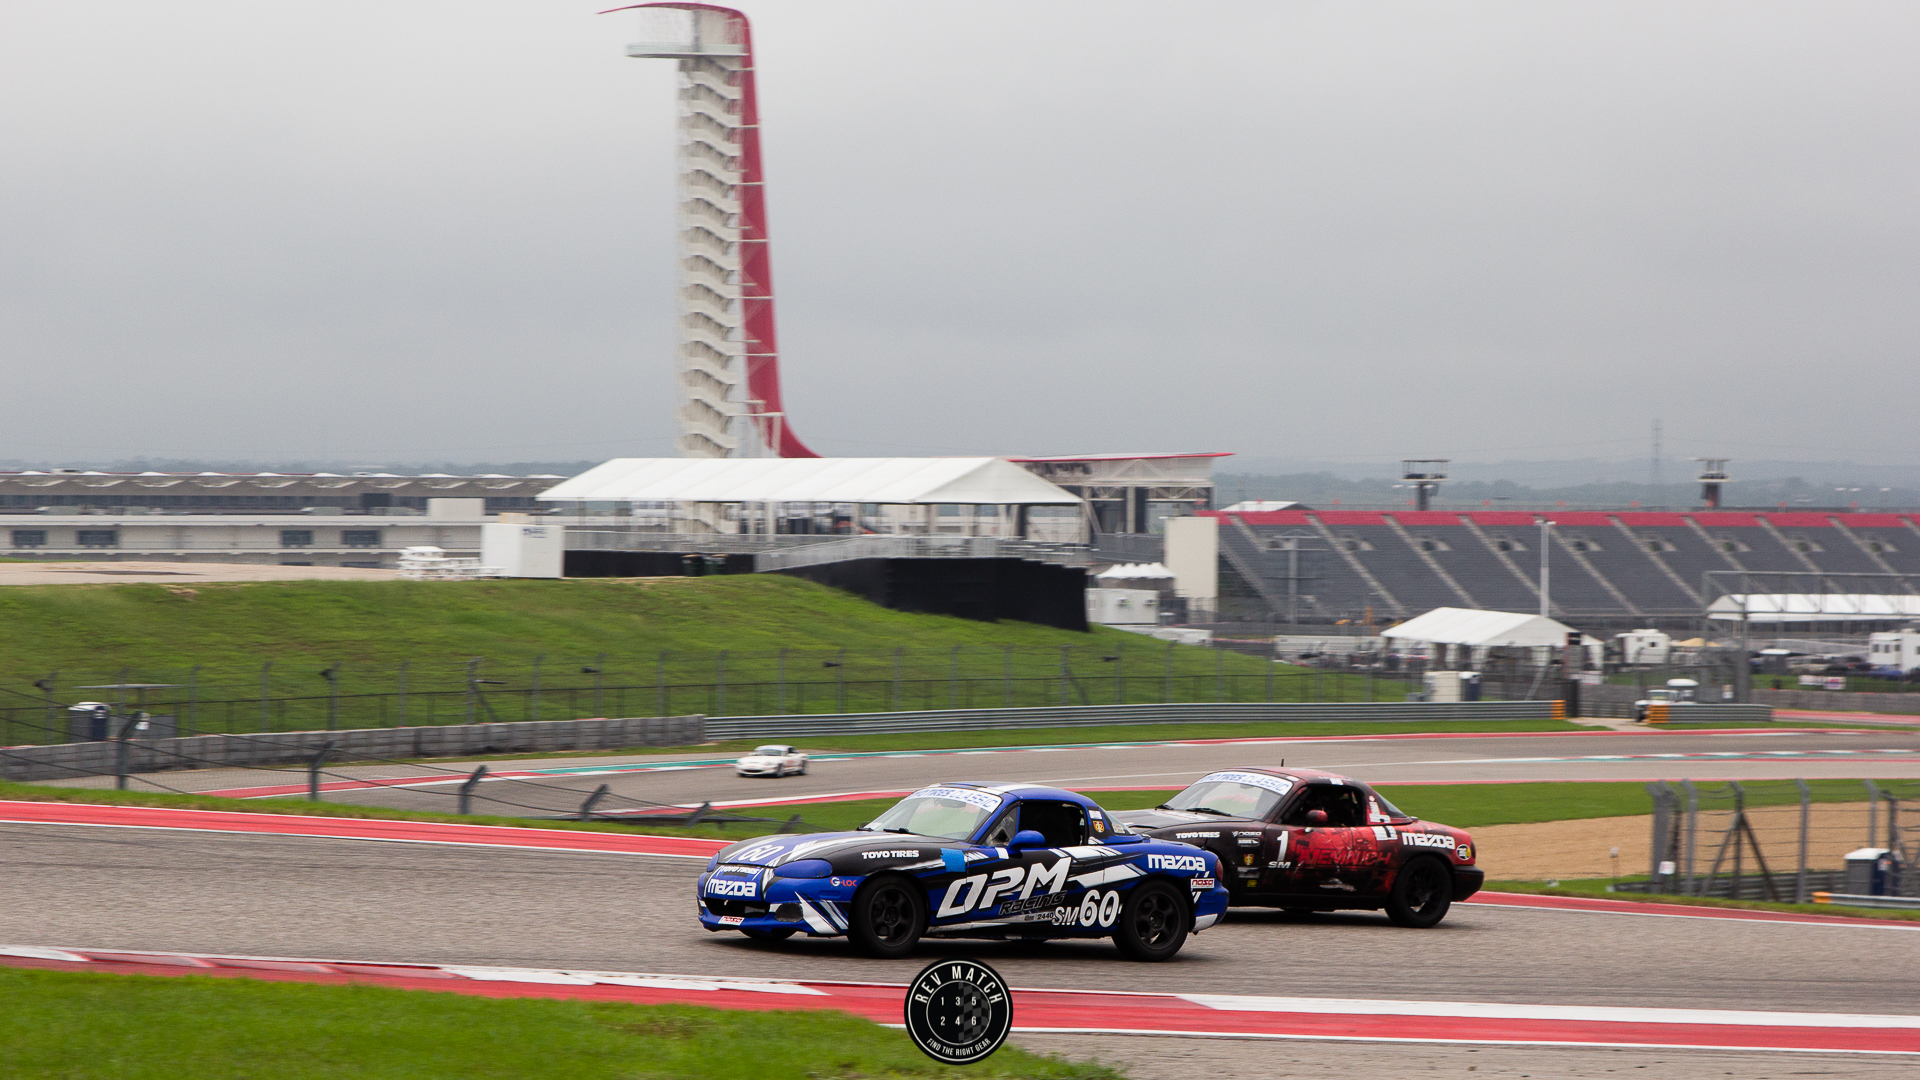 RMM x NASA at COTA 2018-62.jpg